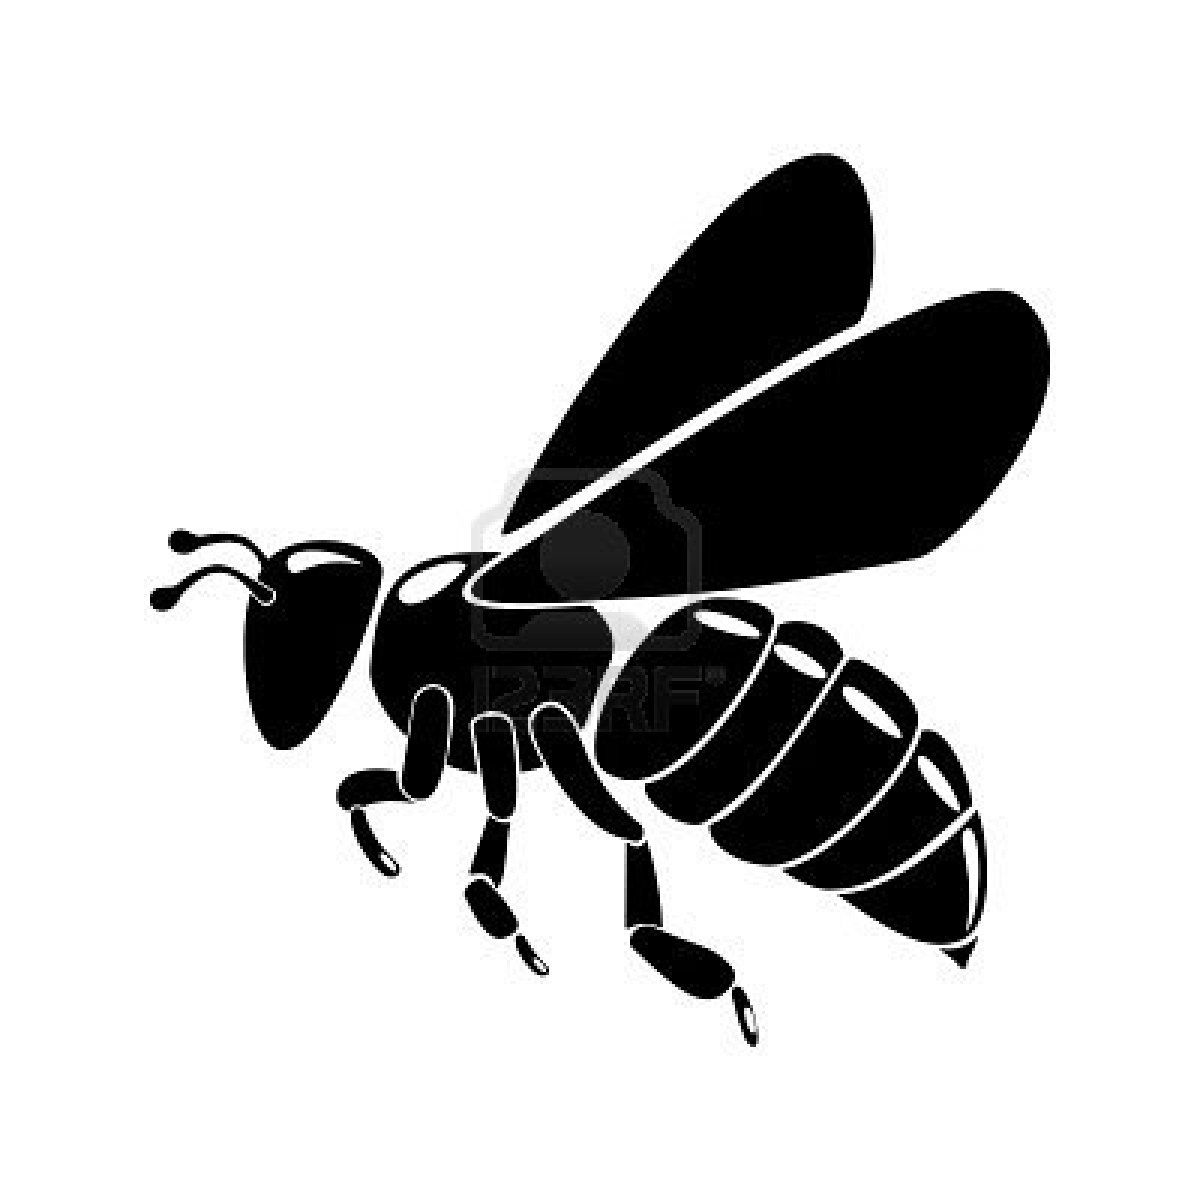 bumble bee silhouette european dark bee silhouette honey bee bumblebee png bumble silhouette bee